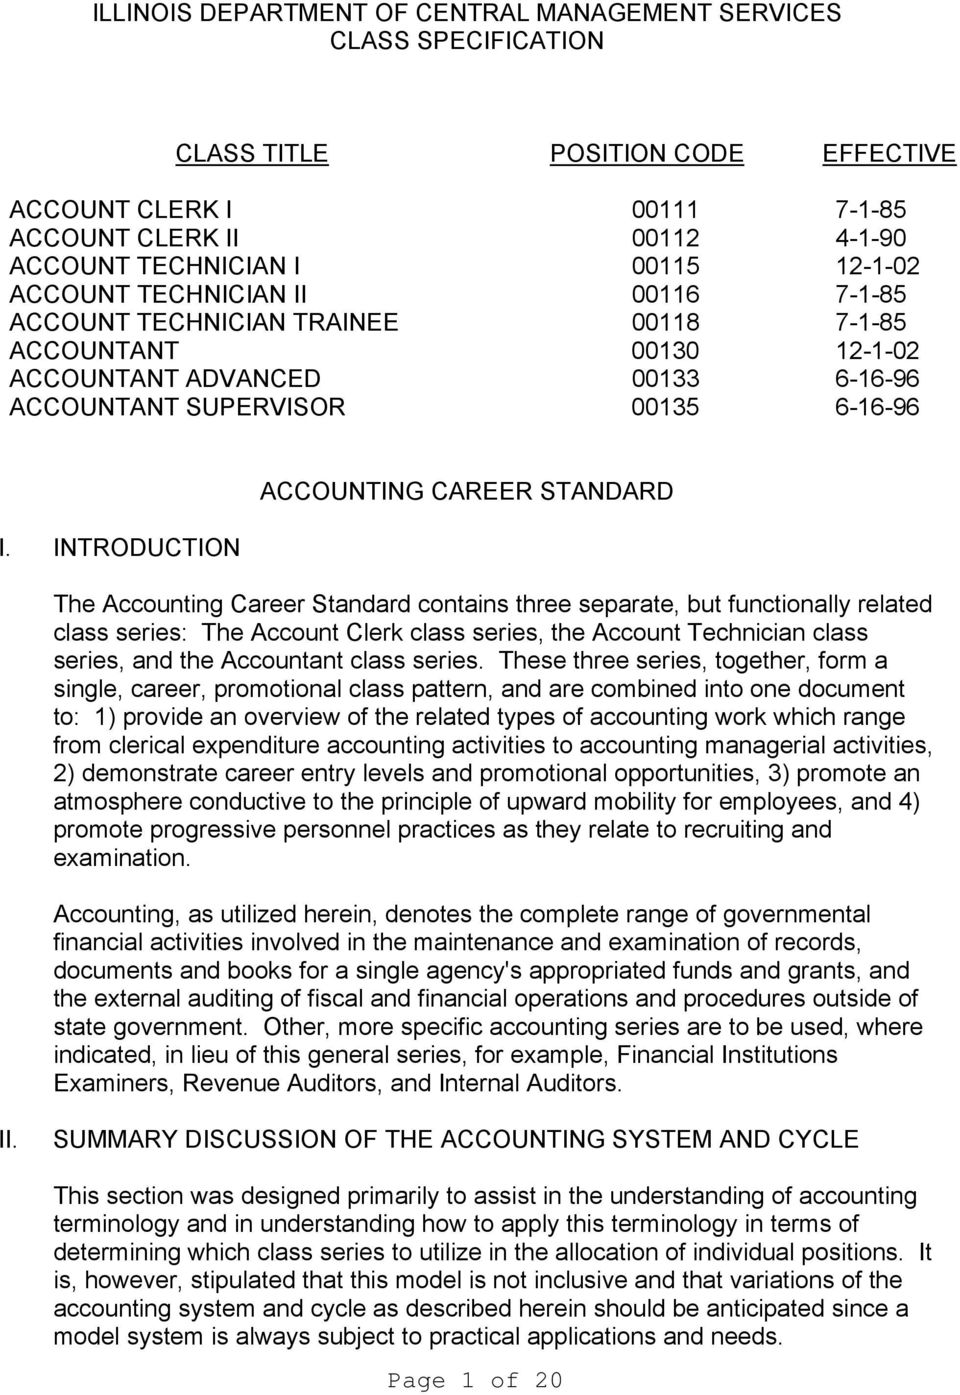 INTRODUCTION ACCOUNTING CAREER STANDARD The Accounting Career Standard contains three separate, but functionally related class series: The Account Clerk class series, the Account Technician class